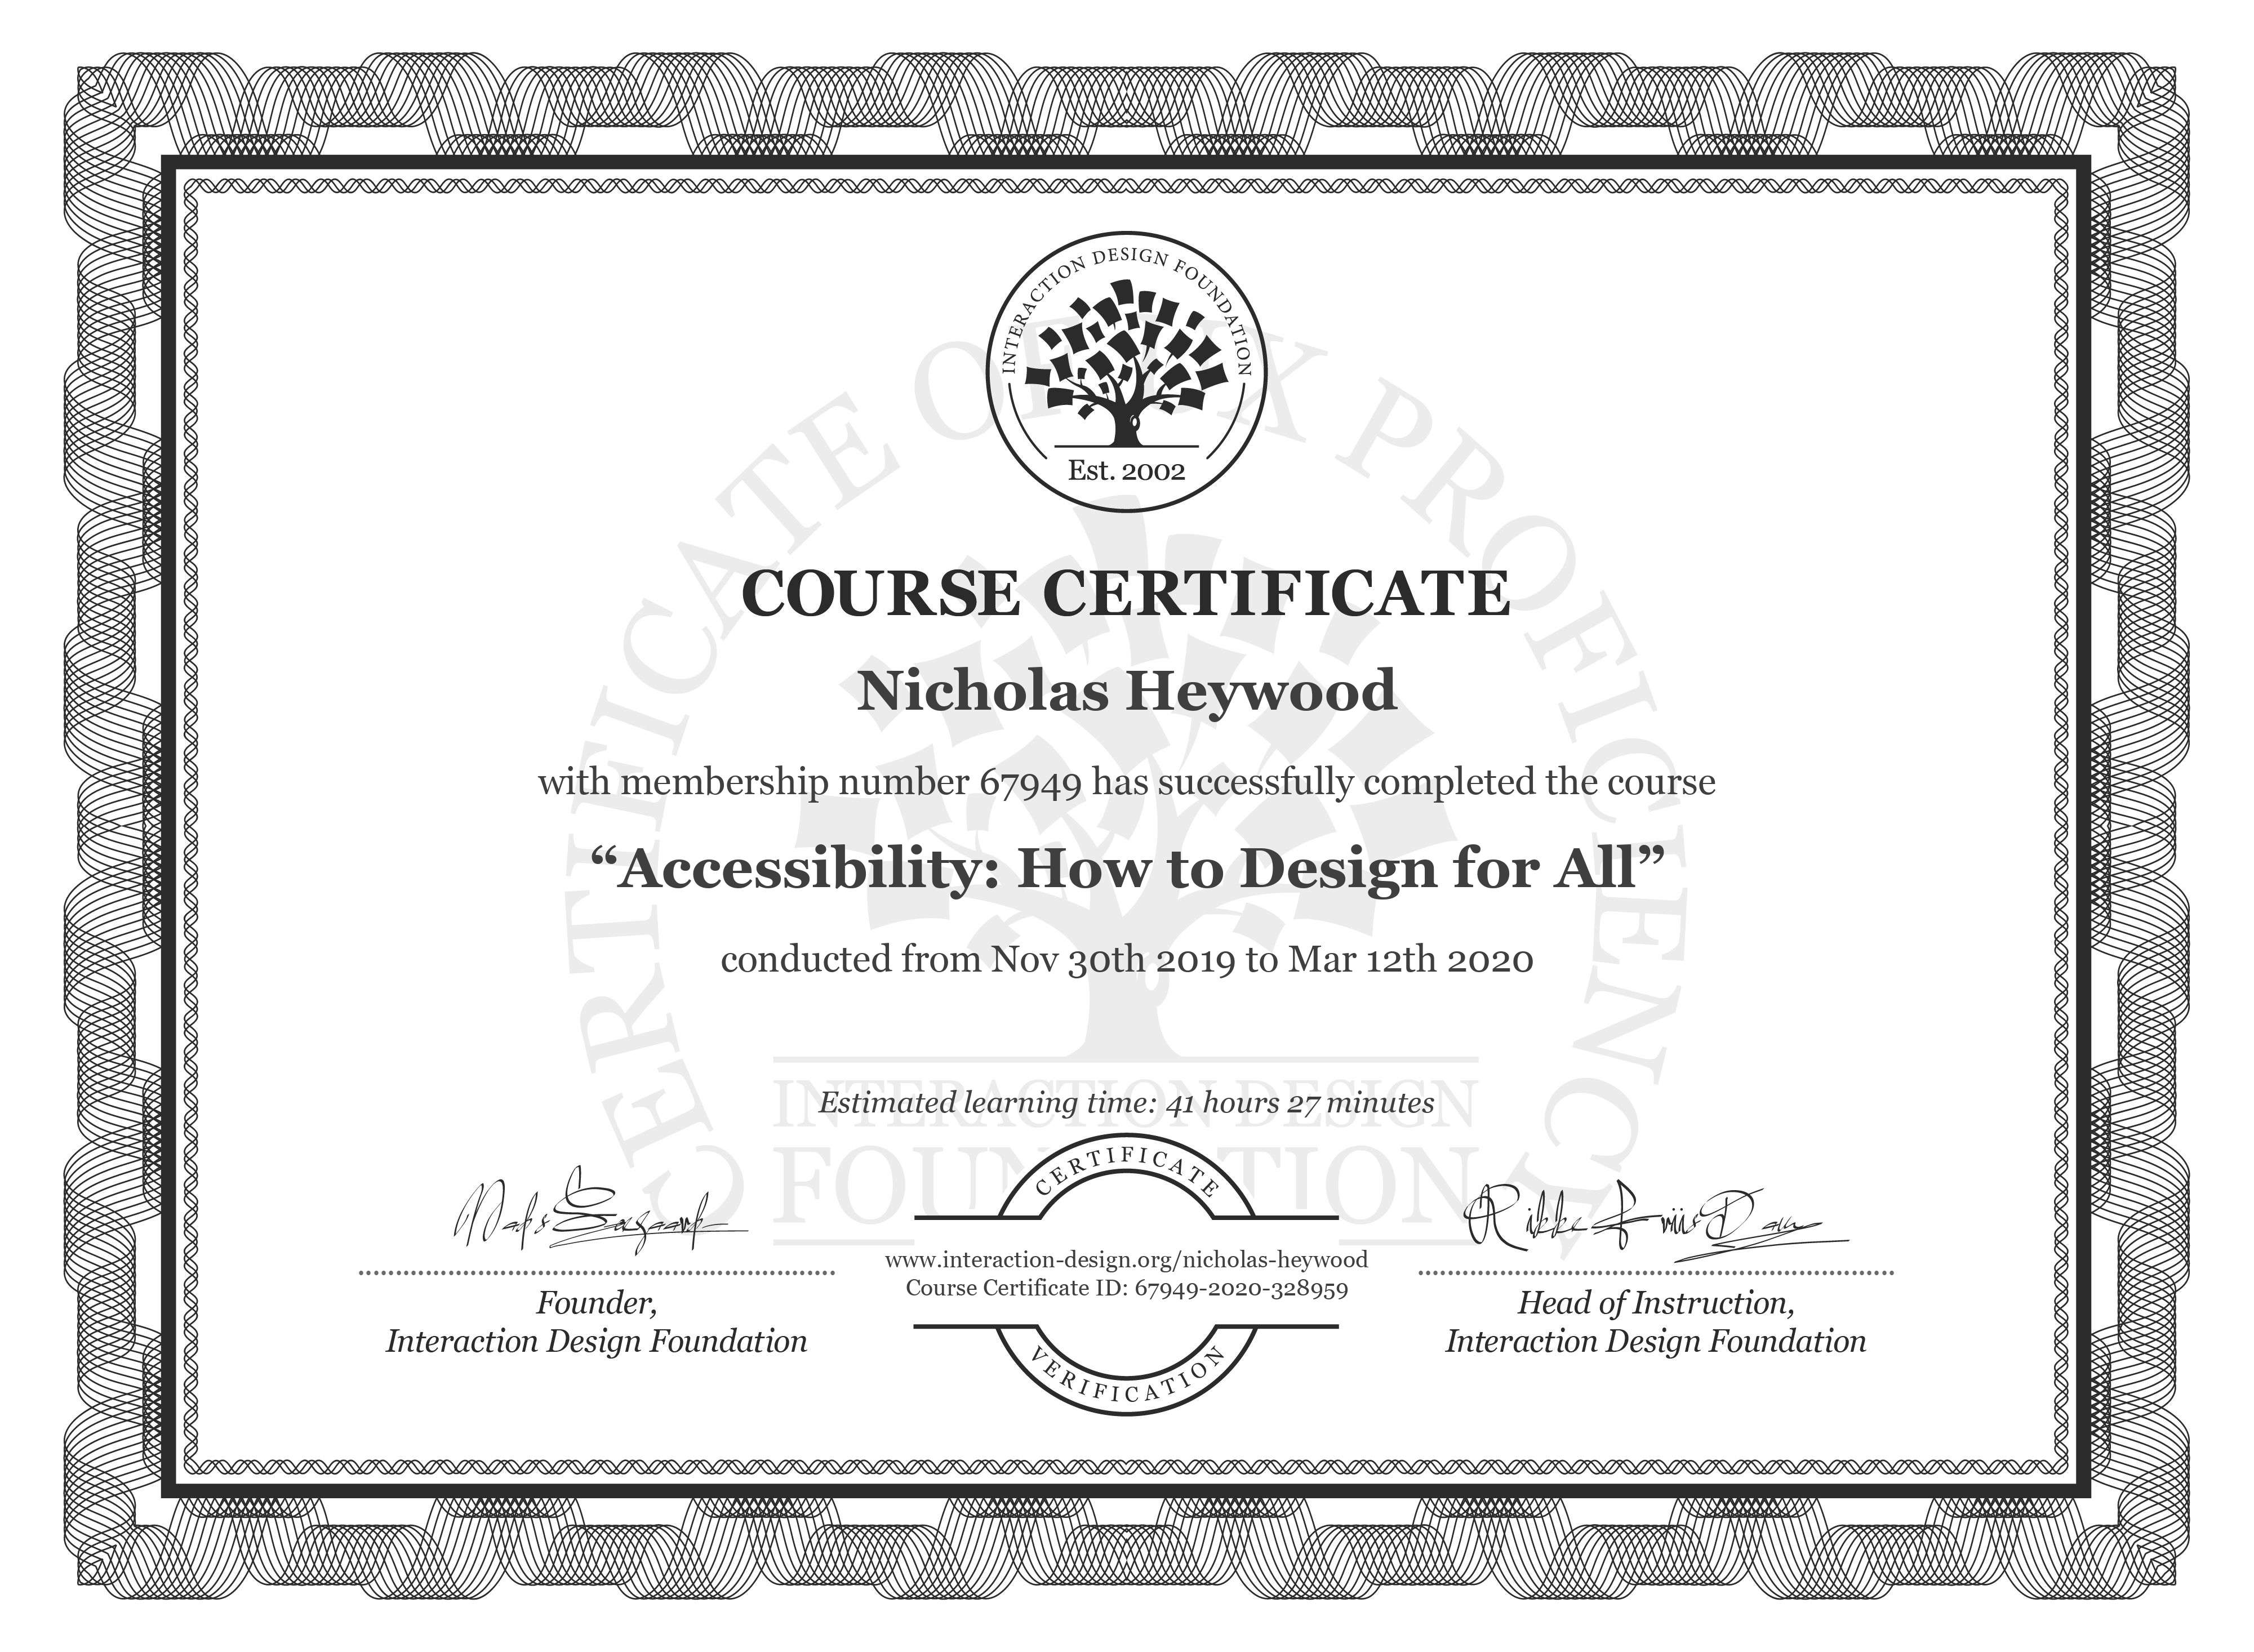 Nicholas Heywood's Course Certificate: Accessibility: How to Design for All